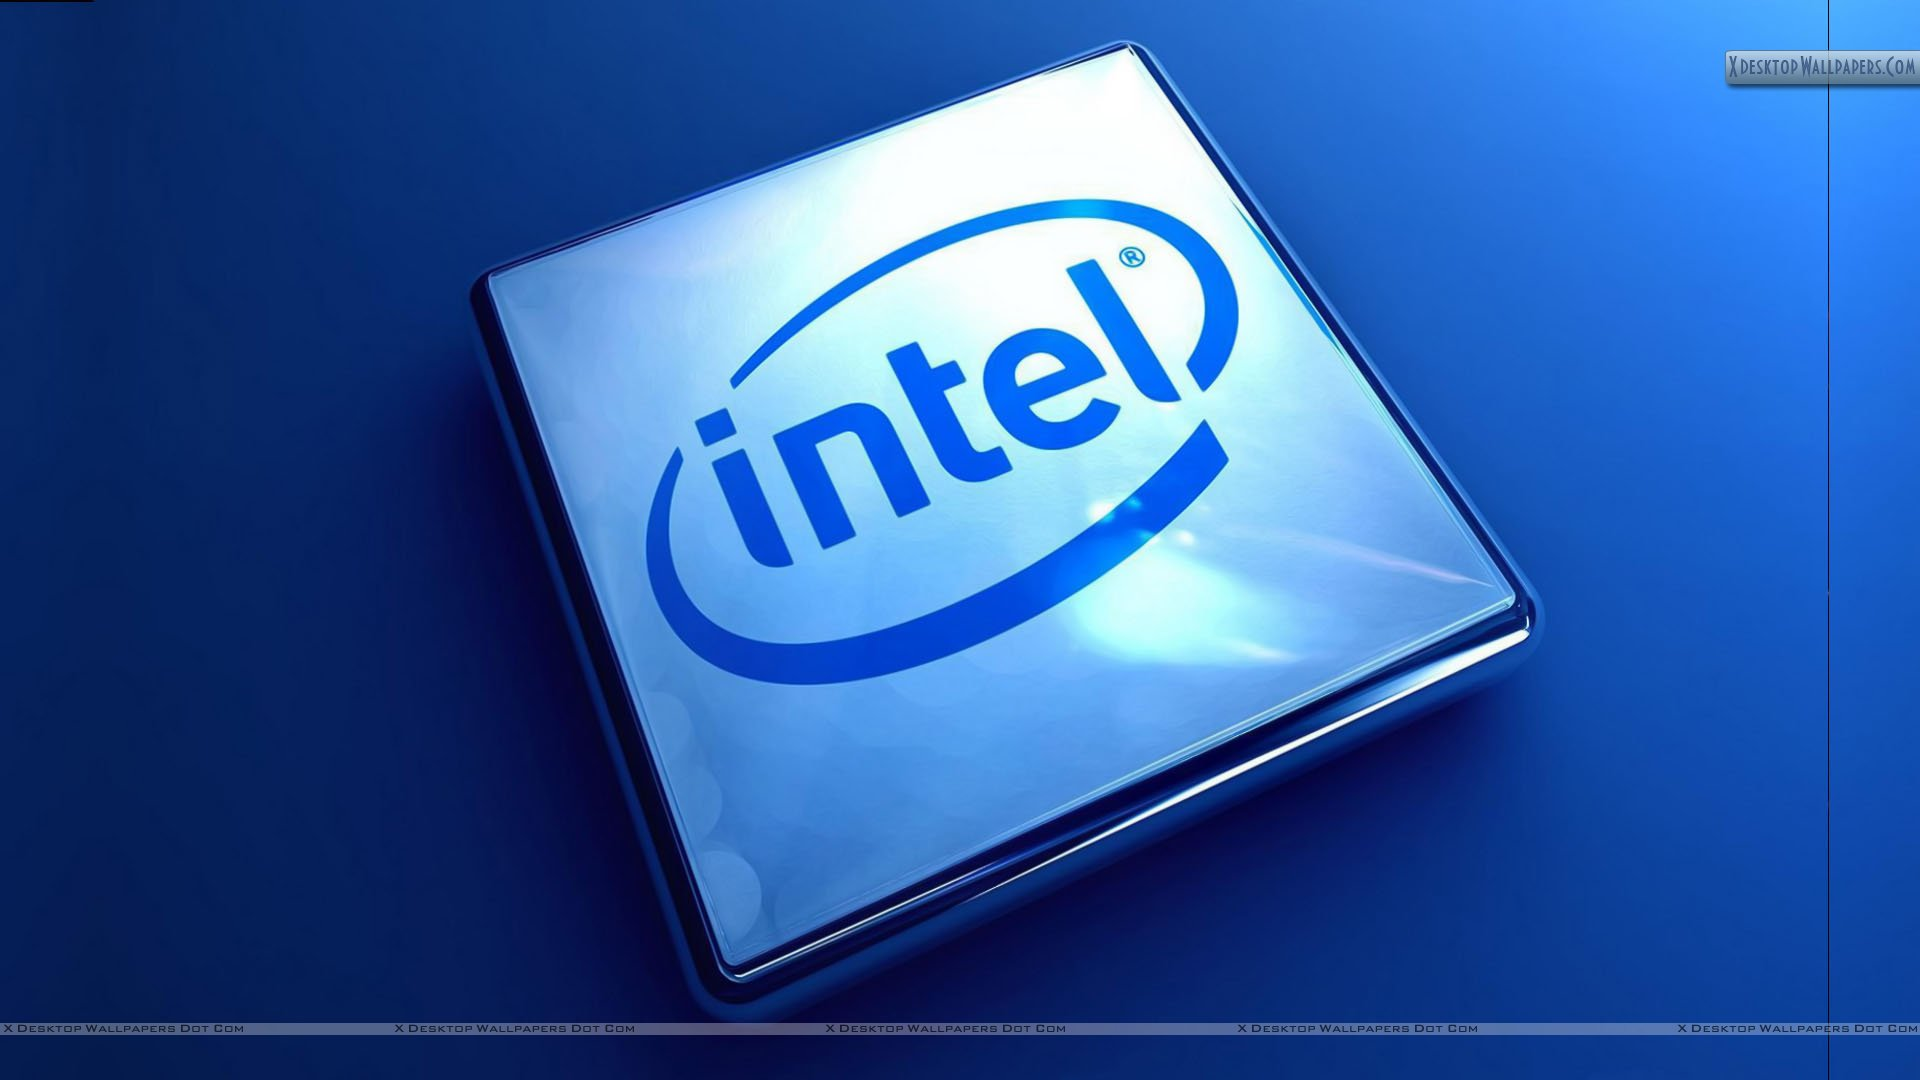 Intel Launches 3rd Generation Quad-Core Ivy Bridge Processors — Double The Power Of Previous Generation